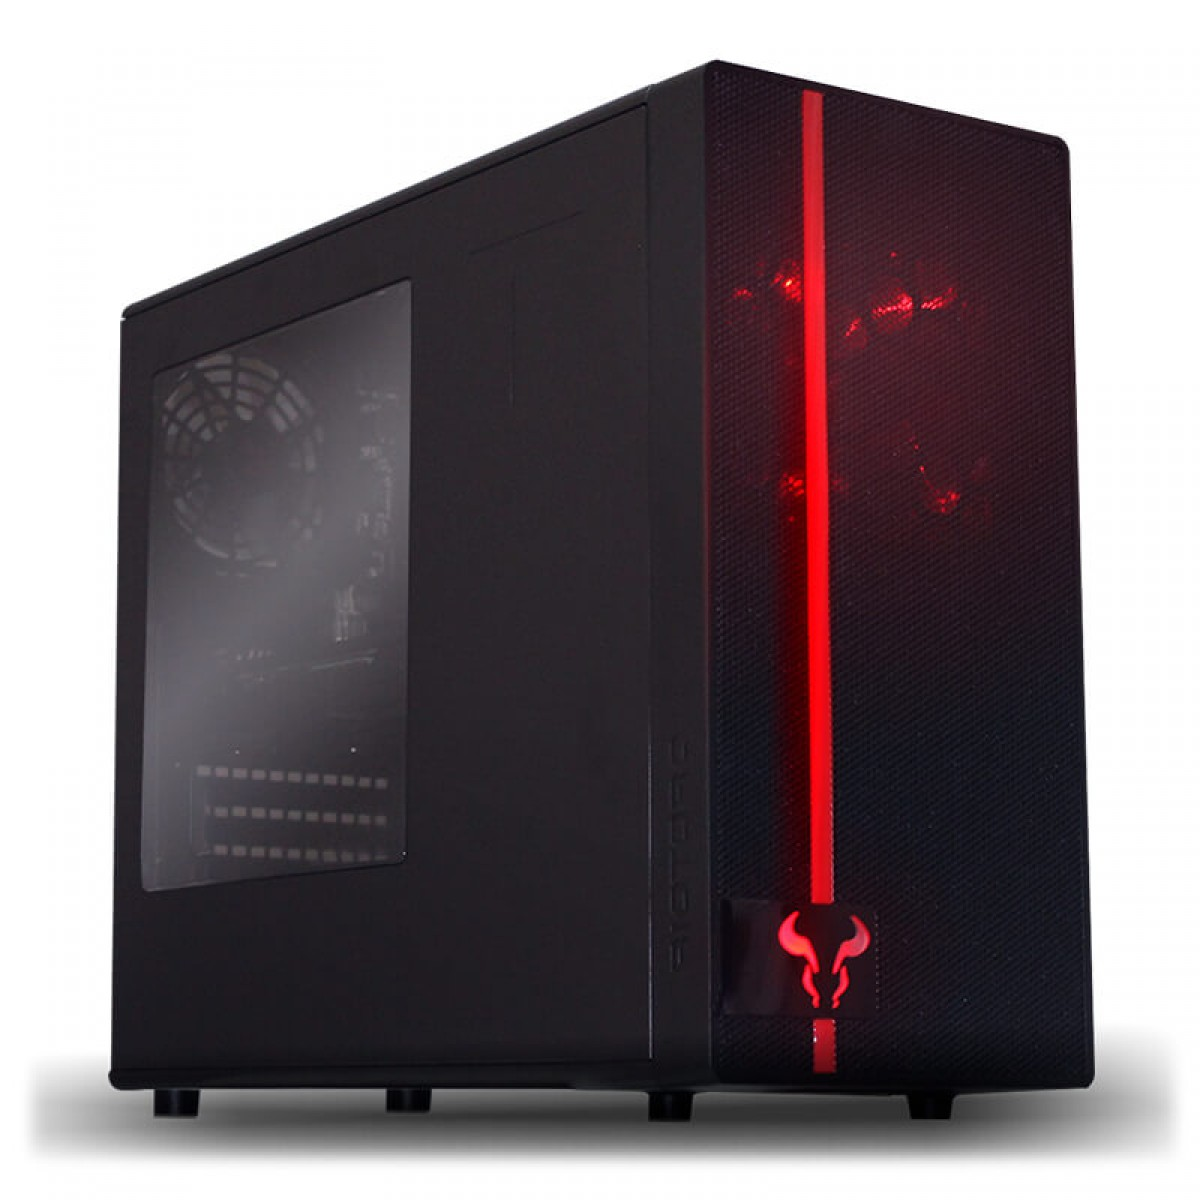 Pc Gamer T-Power Insane Lvl-3 Intel I7 8700k / Geforce RTX 2080 8GB / DDR4 16GB / HD 1TB / 750W